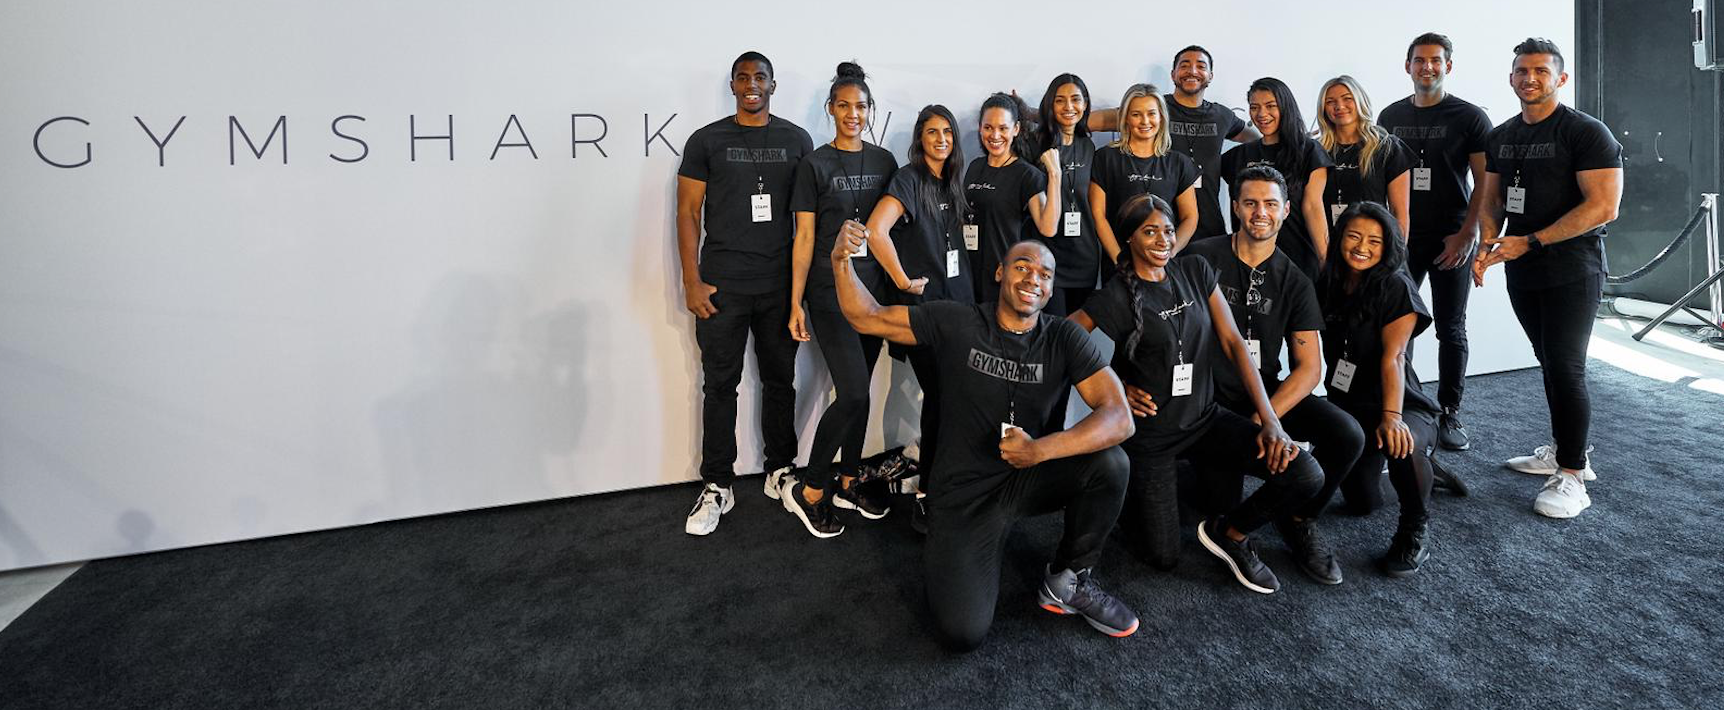 Gymshark Promo Staff for hire at events